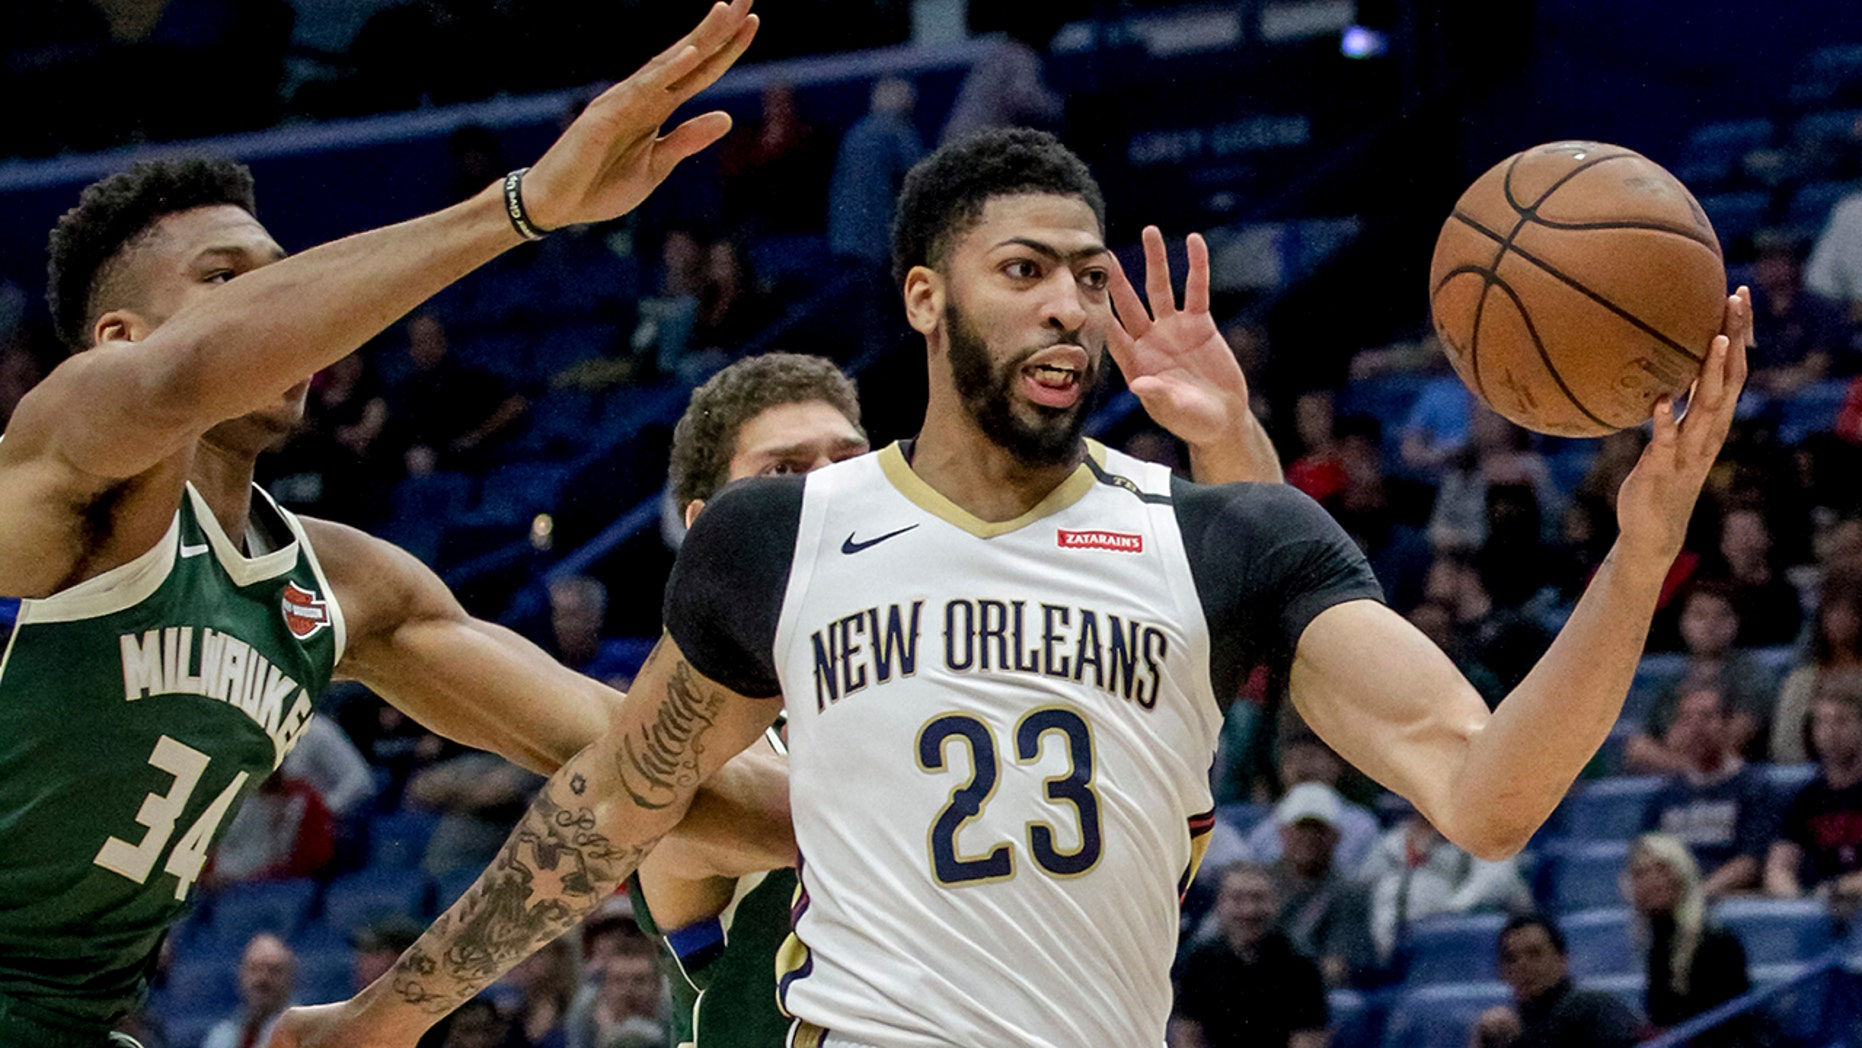 In this March 12 photo, New Orleans Pelicans forward Anthony Davis (23) takes an outlet pass against Milwaukee Bucks forward Giannis Antetokounmpo (34) in the first half of a game in New Orleans. (AP Photo/Scott Threlkeld, File)